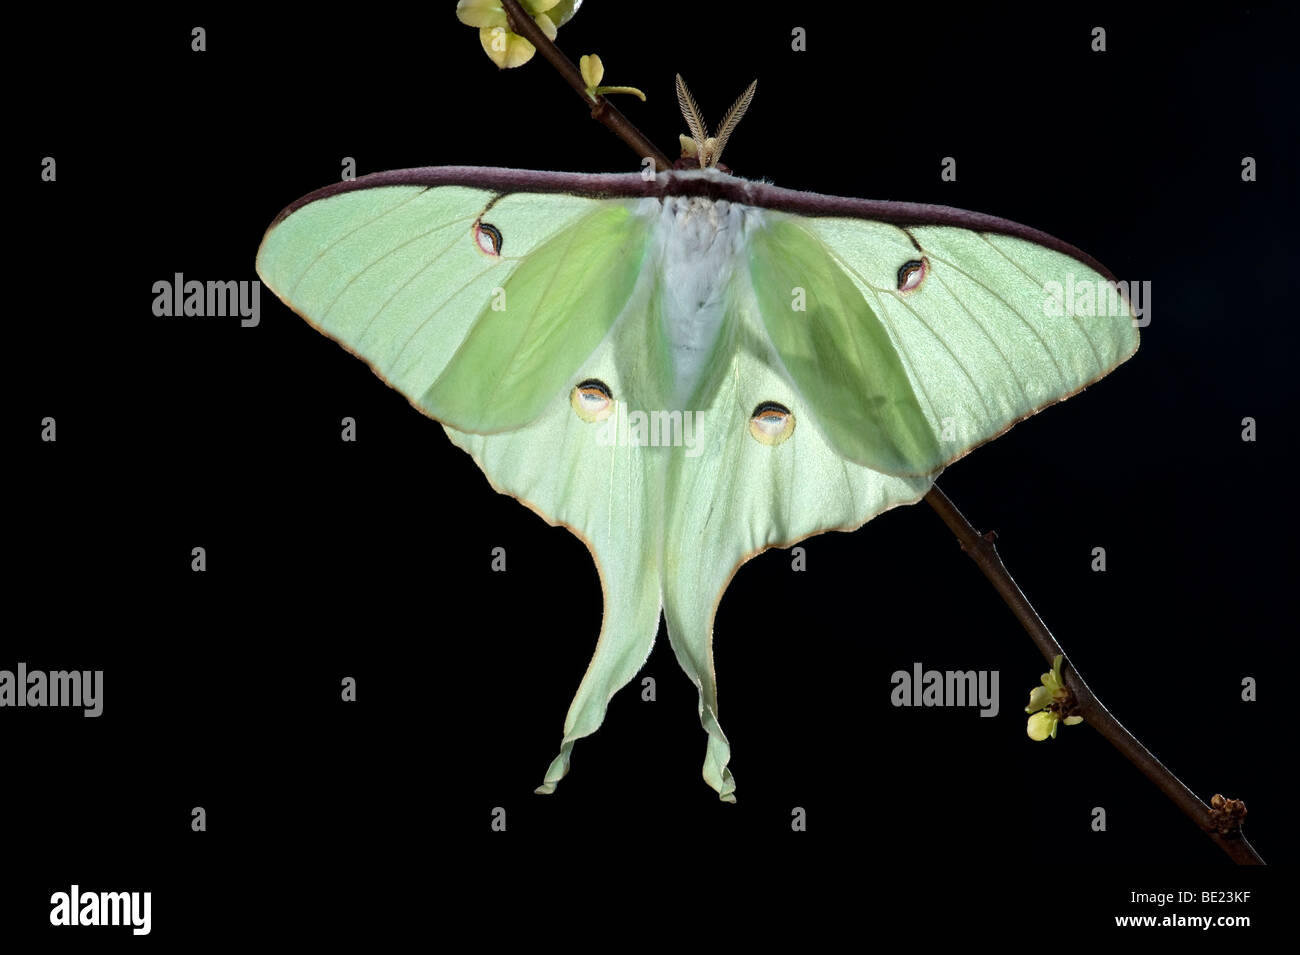 American Moon Moth  Actias luna USA backlight on shrub branch - Stock Image